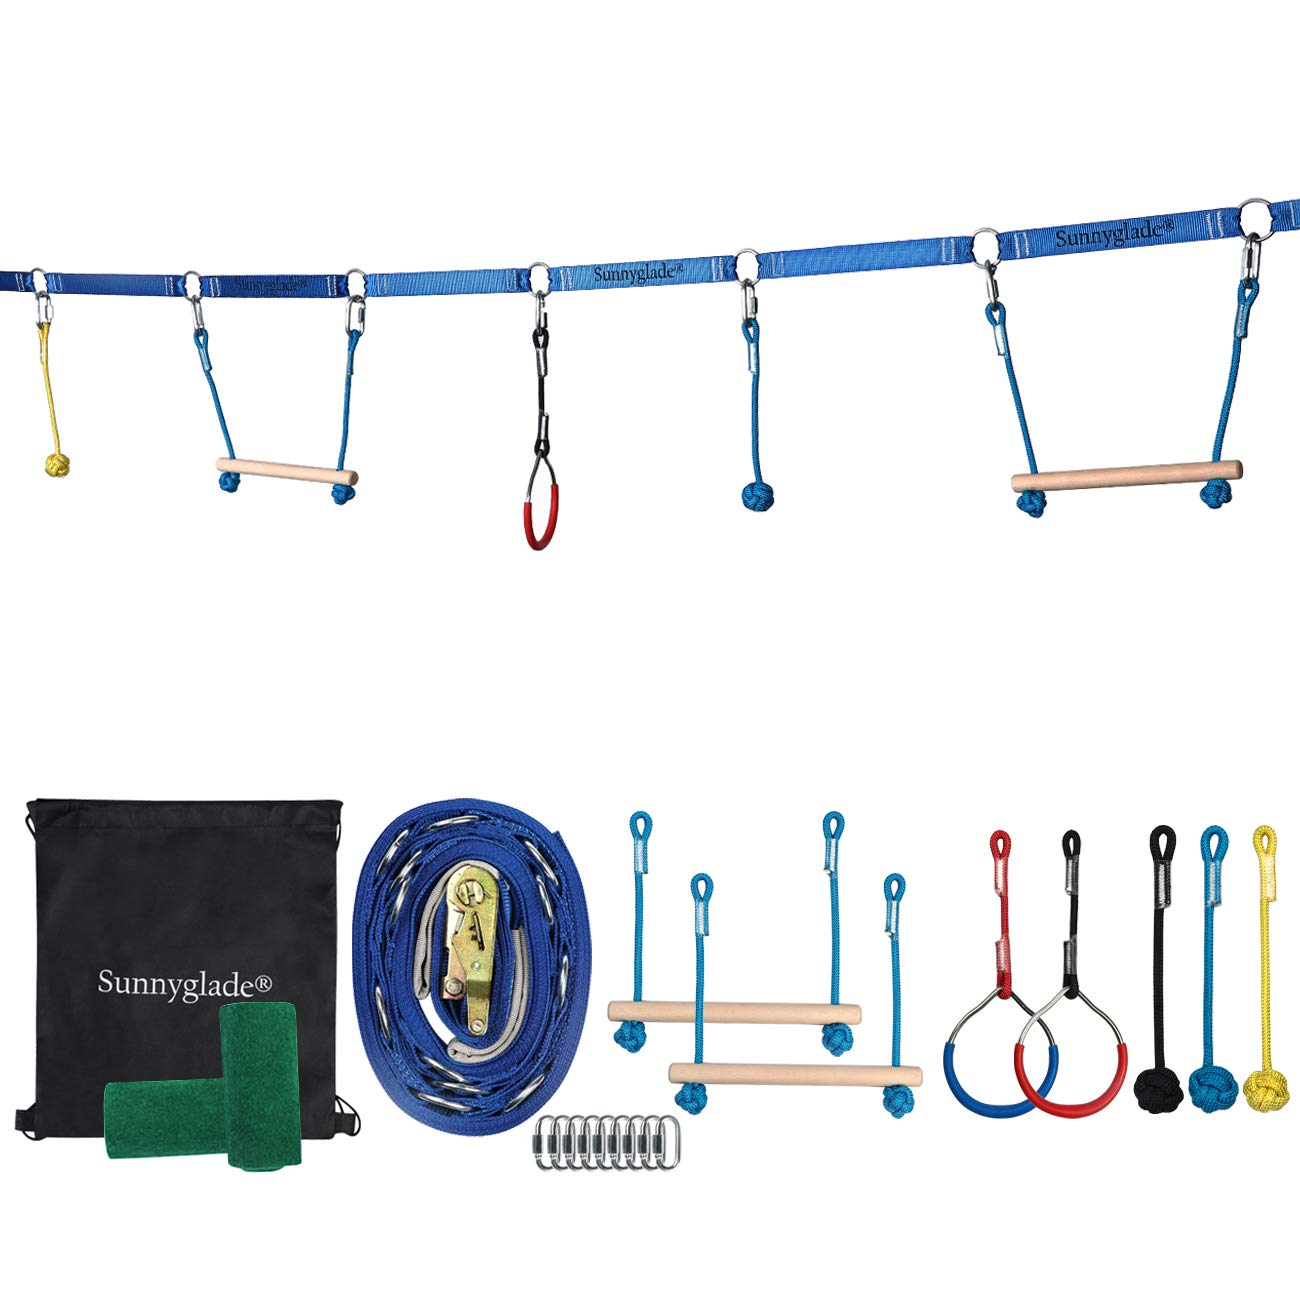 Sunnyglade Backyard Ninja Line Hanging Obstacle Course/Slackers Ninja Line Accessories for Kids - 40ft Slackline Kit with 2 Bars, 3 Fists & 2Rings (Obstacle Course Ninja Line) (Backyard Ninja Line) by Sunnyglade